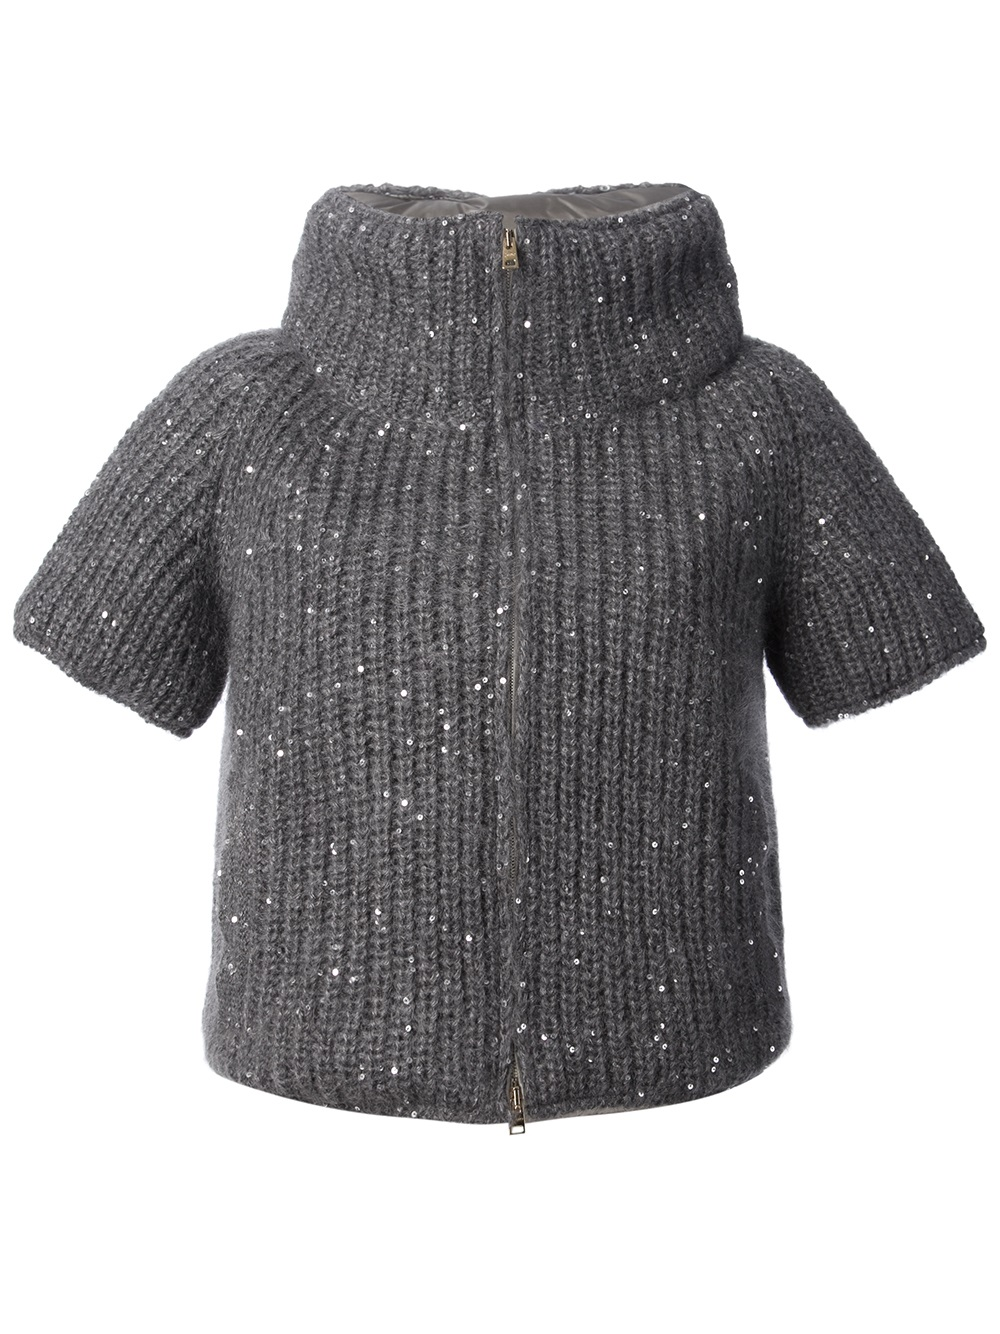 922bedd89cf84e Lyst - Herno Chunky Knit Top in Gray